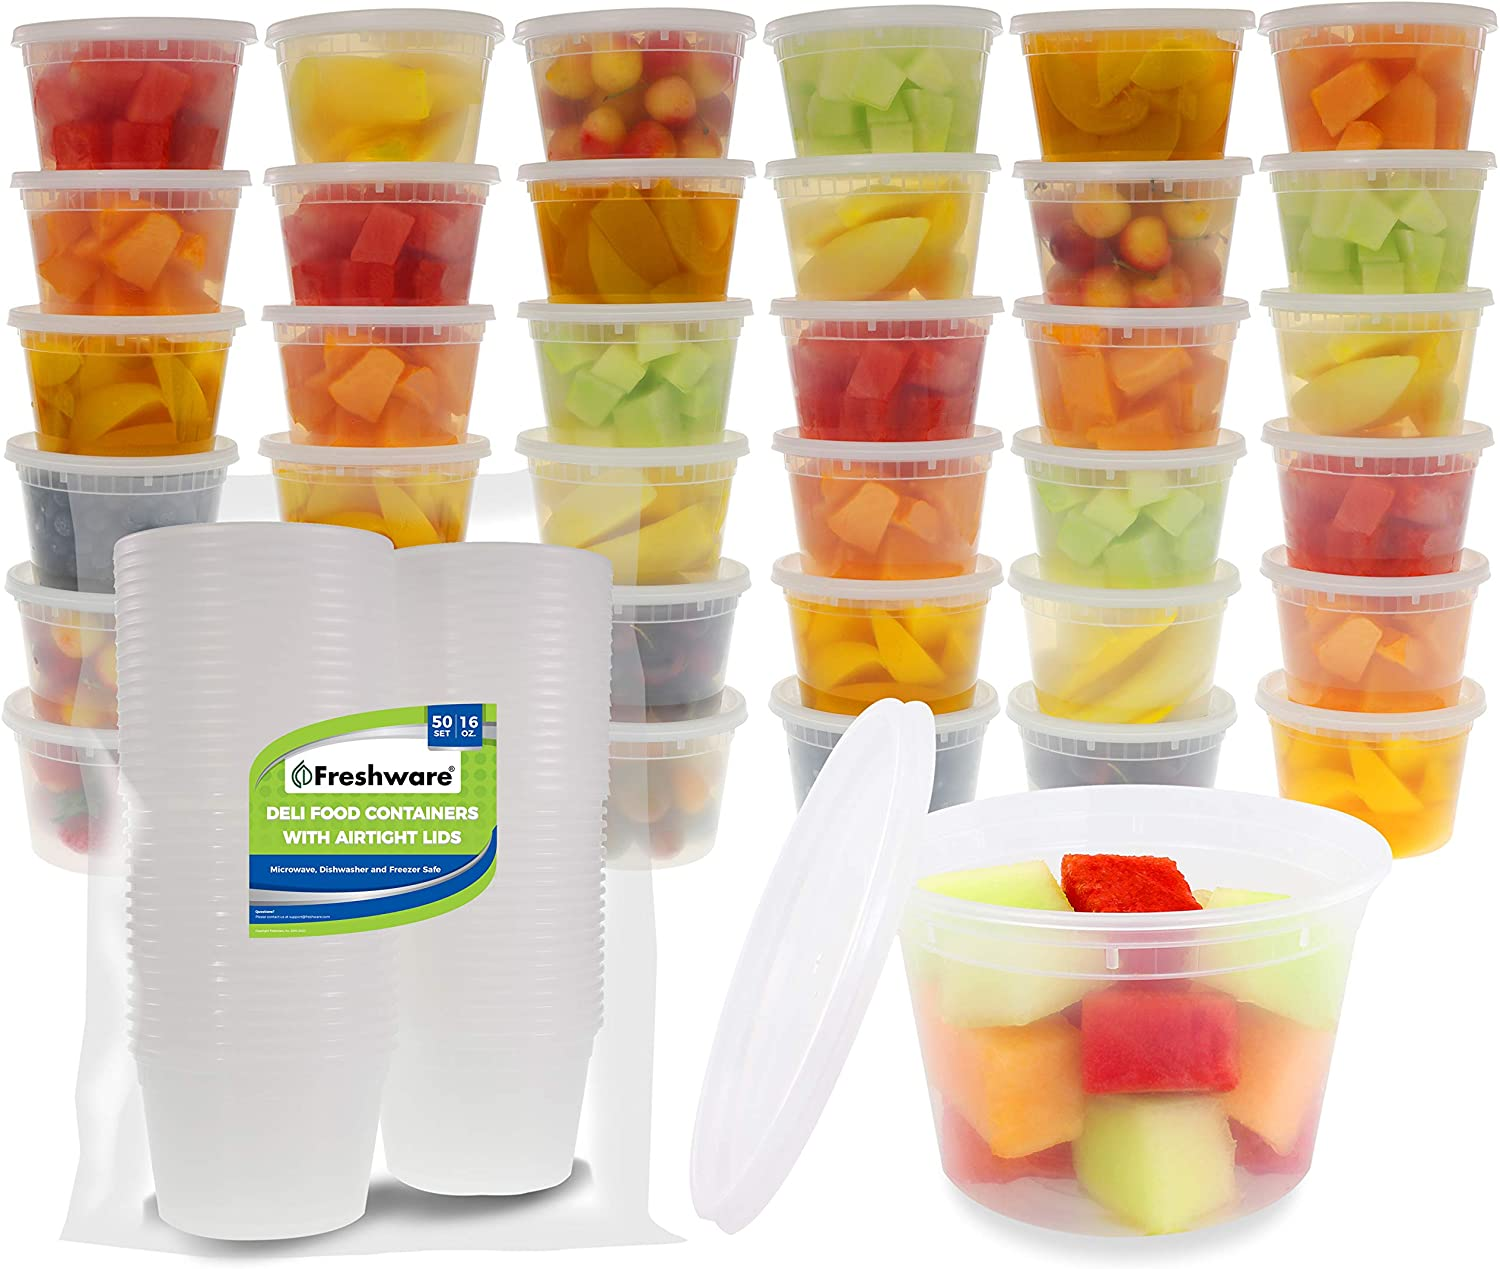 Freshware Food Storage Containers [50 Pack] 16 oz Plastic Containers with Lids, Deli, Slime, Soup, Meal Prep Containers | BPA Free | Stackable | Leakproof | Microwave/Dishwasher/Freezer Safe